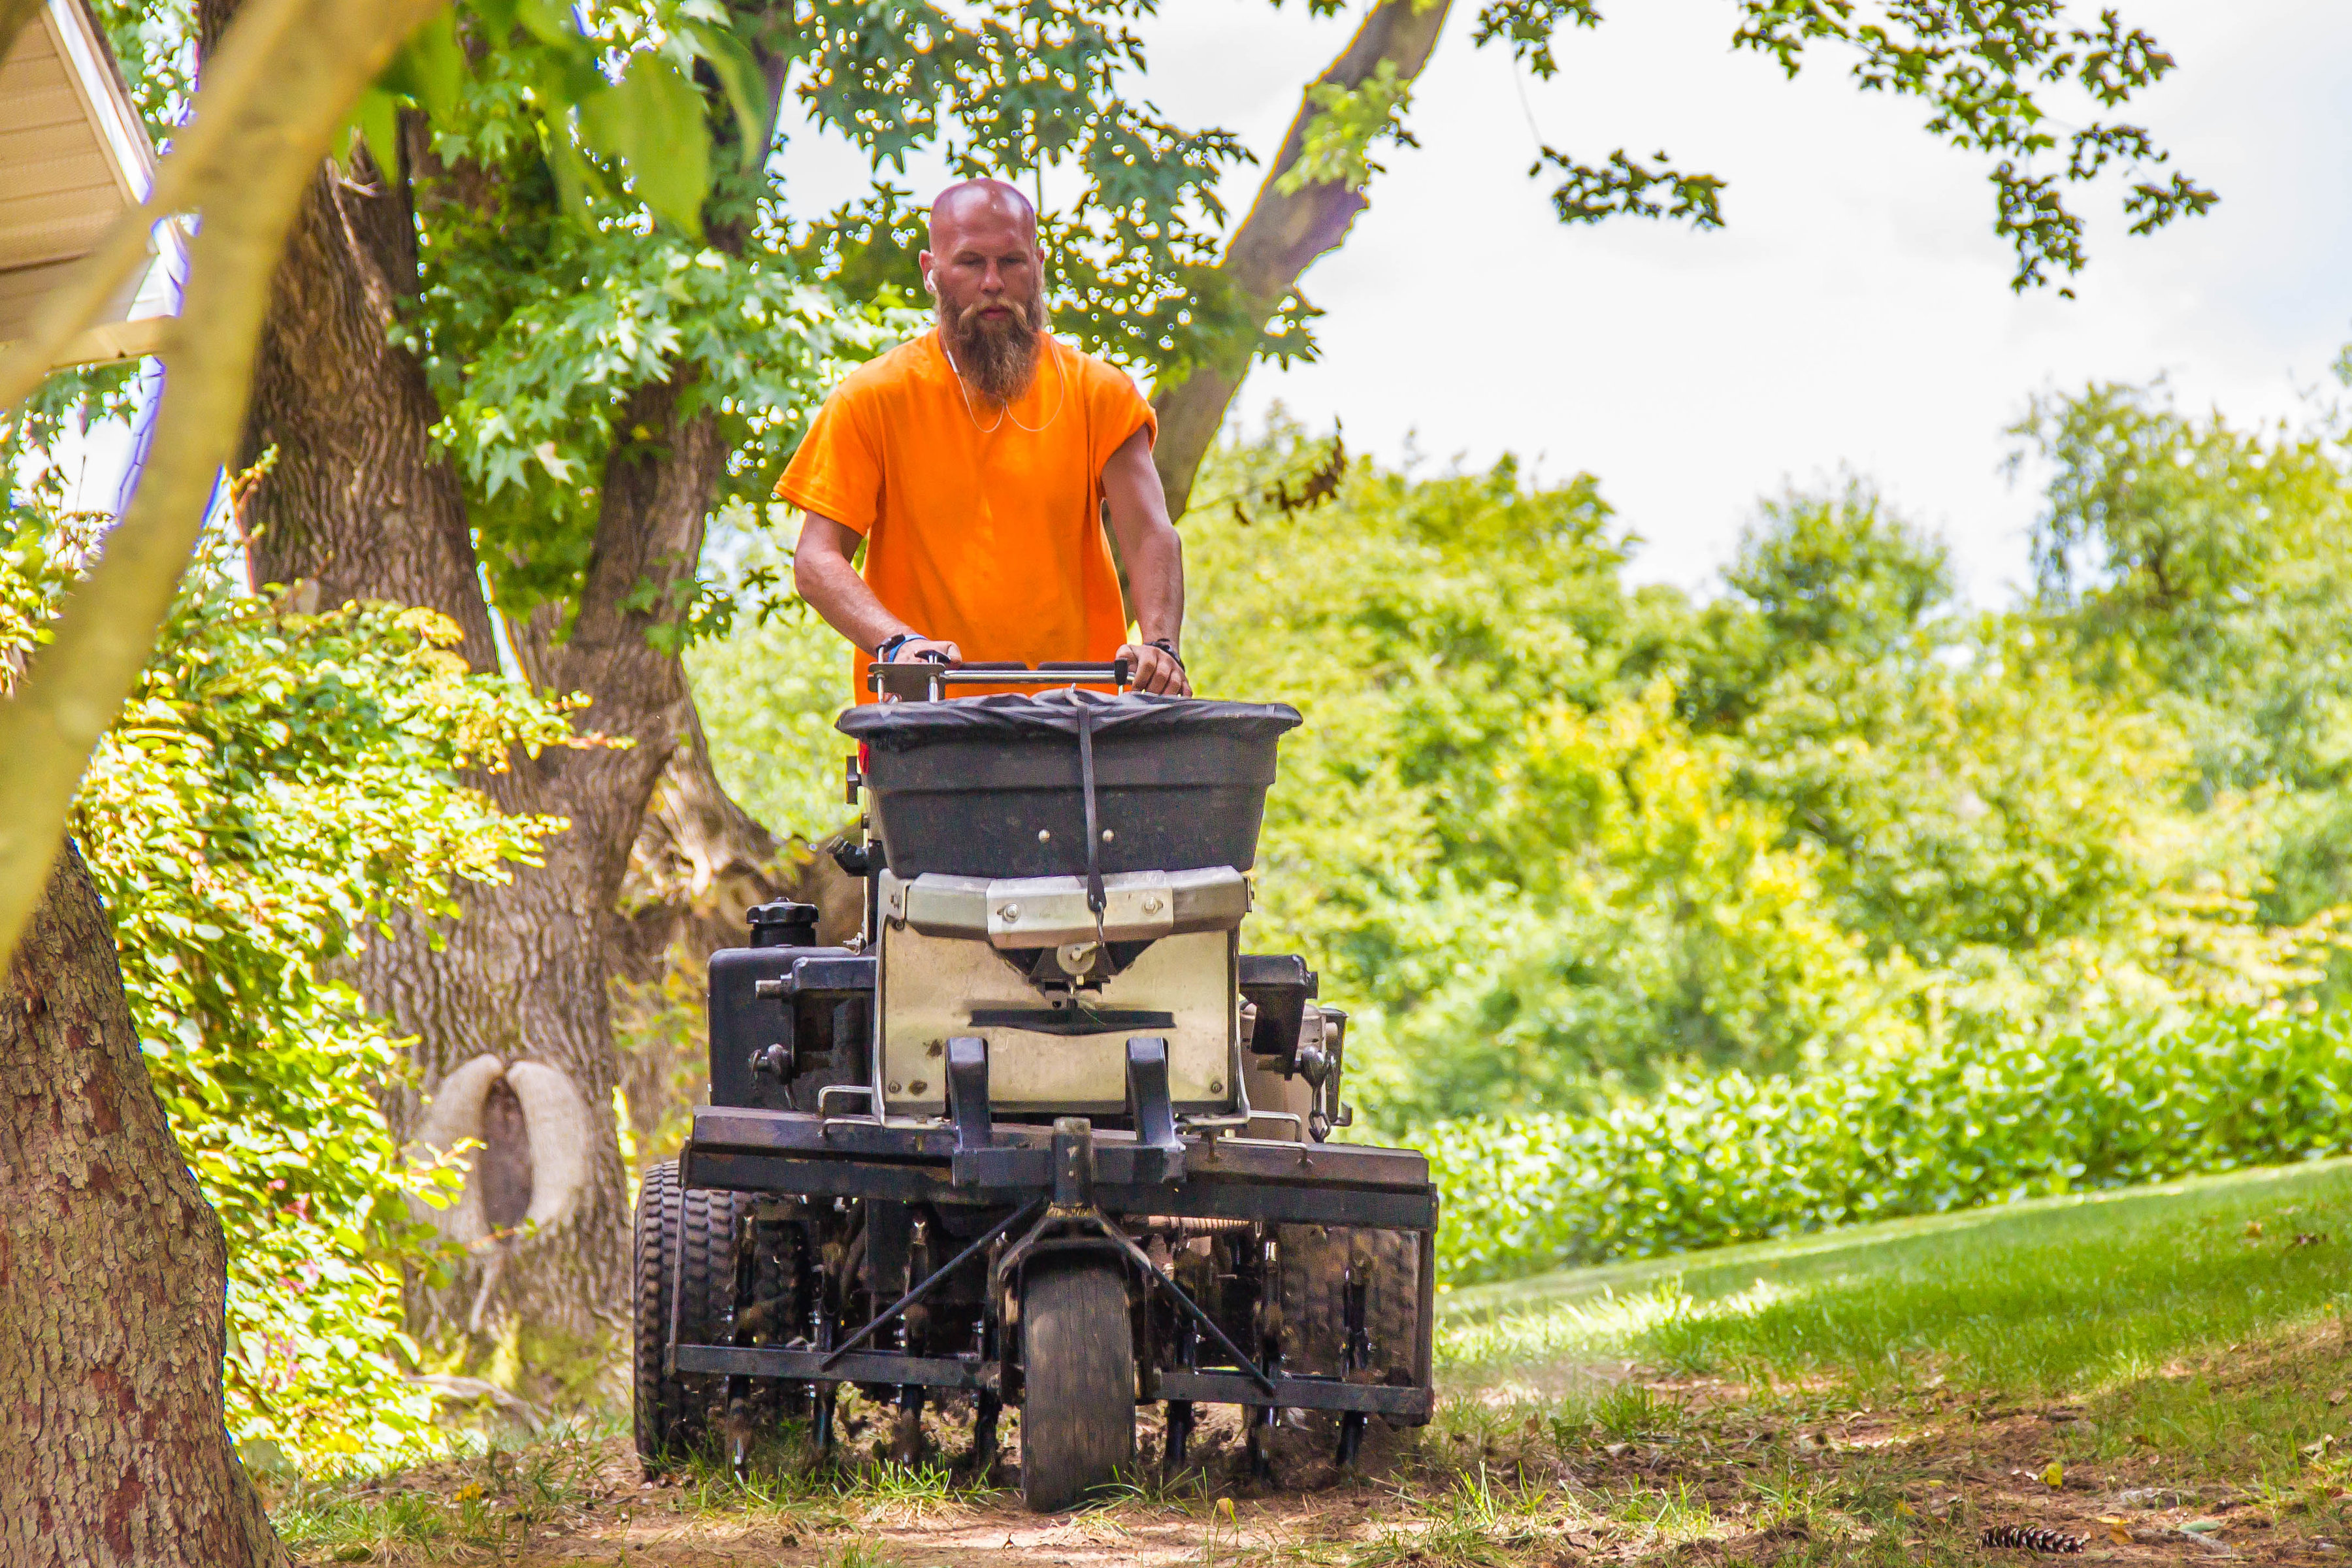 image of a technician aerating a lawn